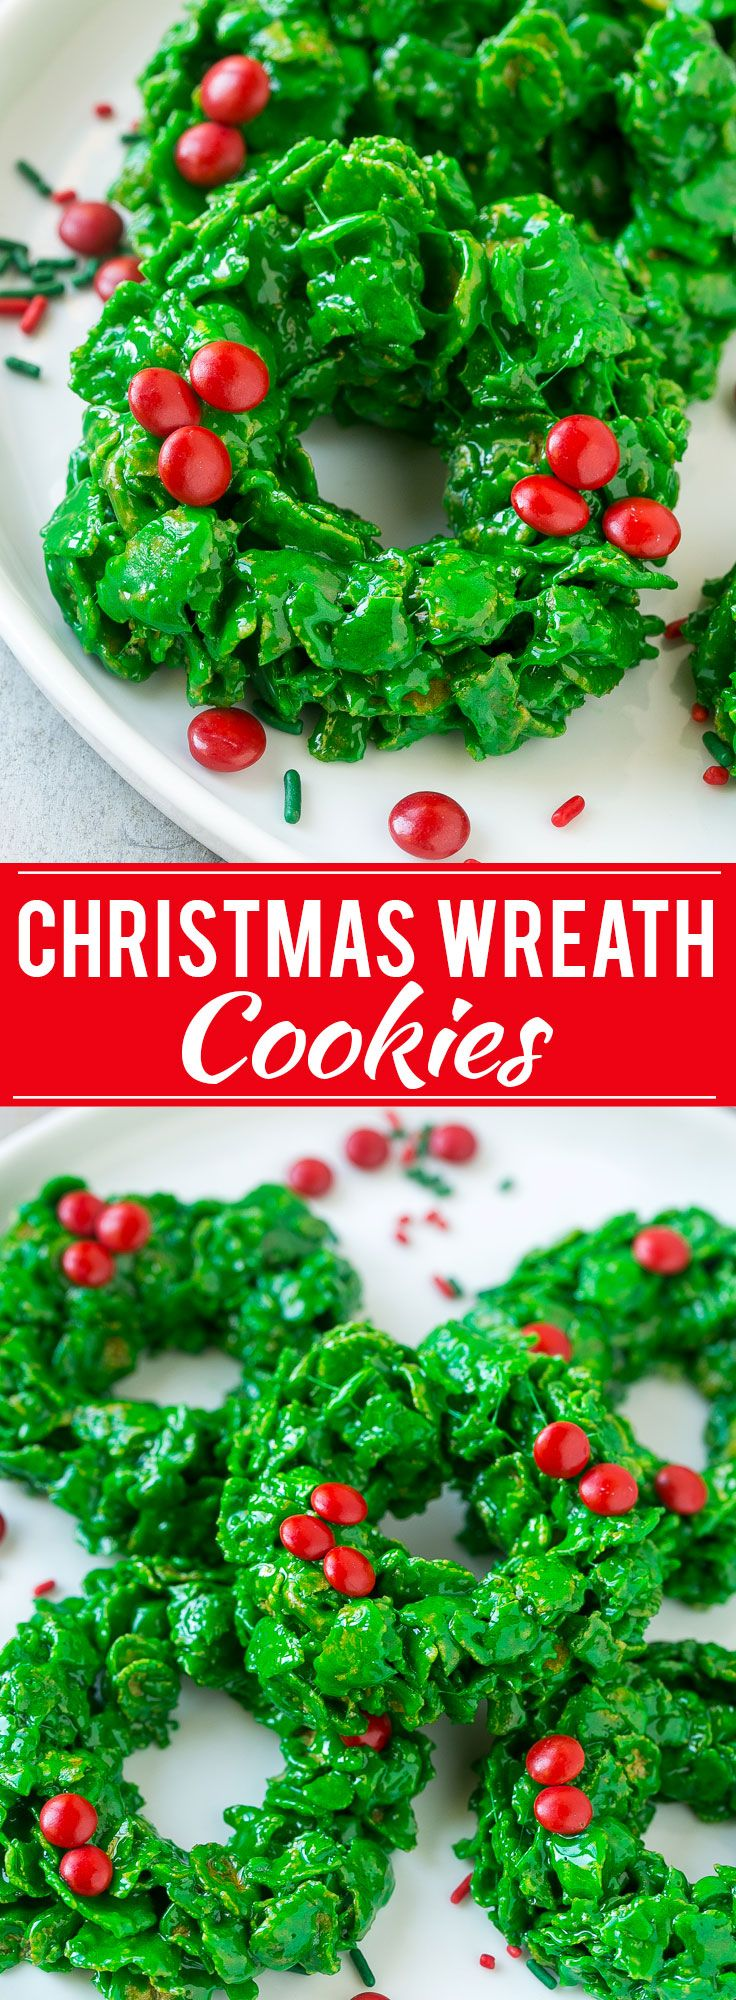 This recipe for nobake Christmas wreath cookies has just